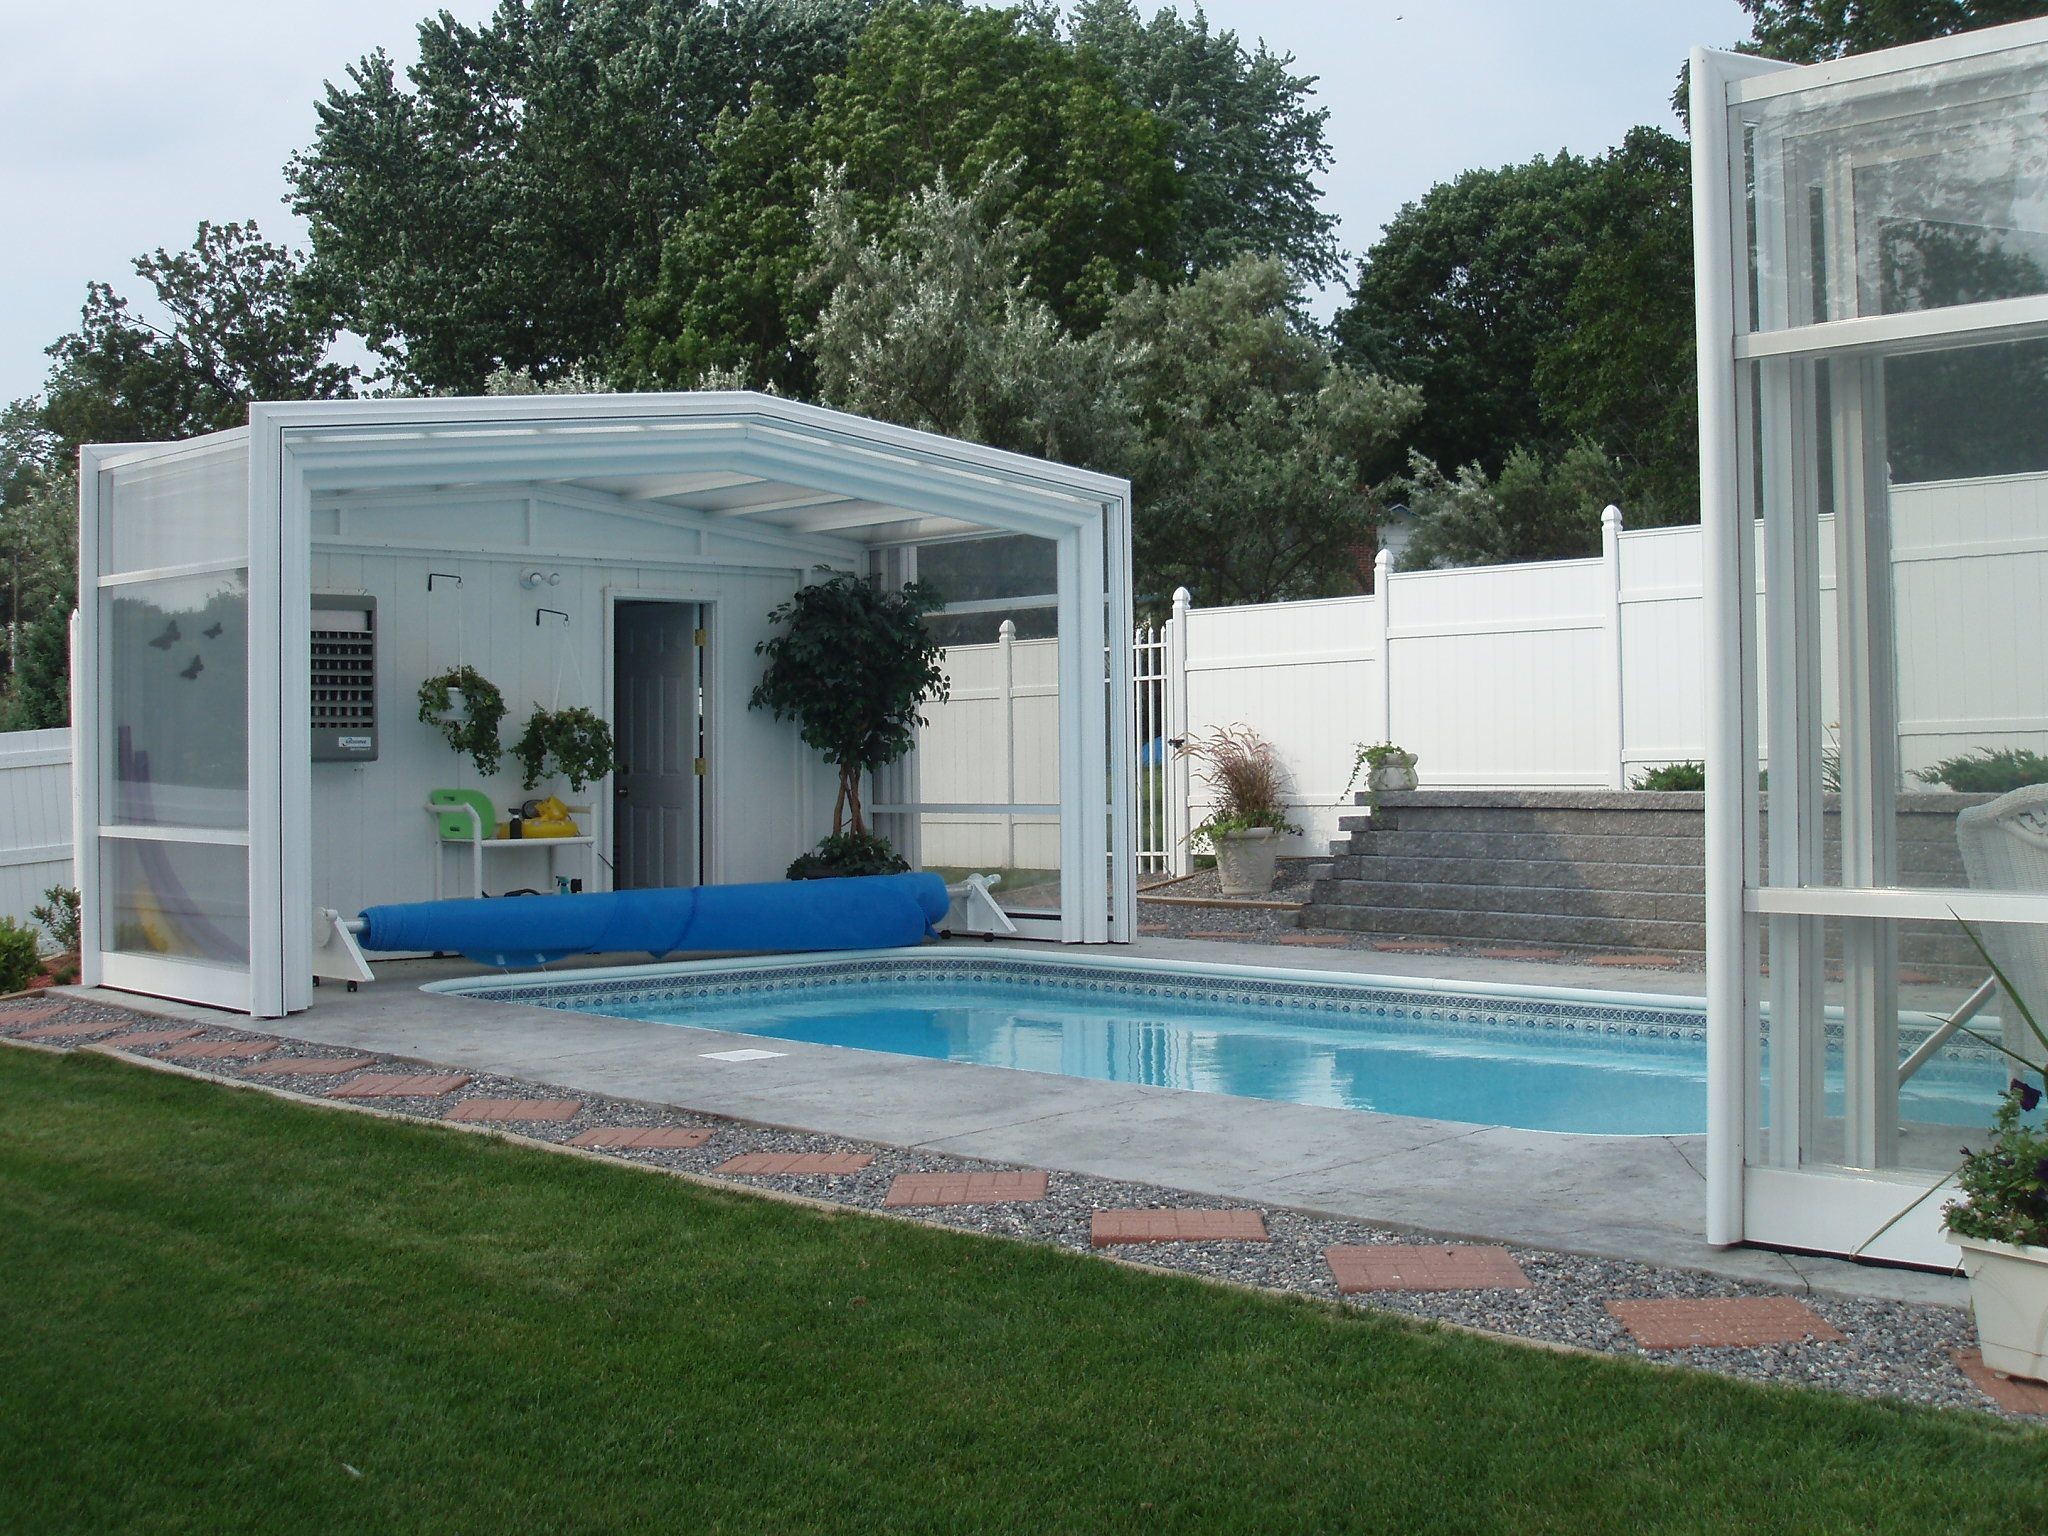 Pool Aus Container Retractable Roofs For Pools Retractable Roofs Enclosed Swimming